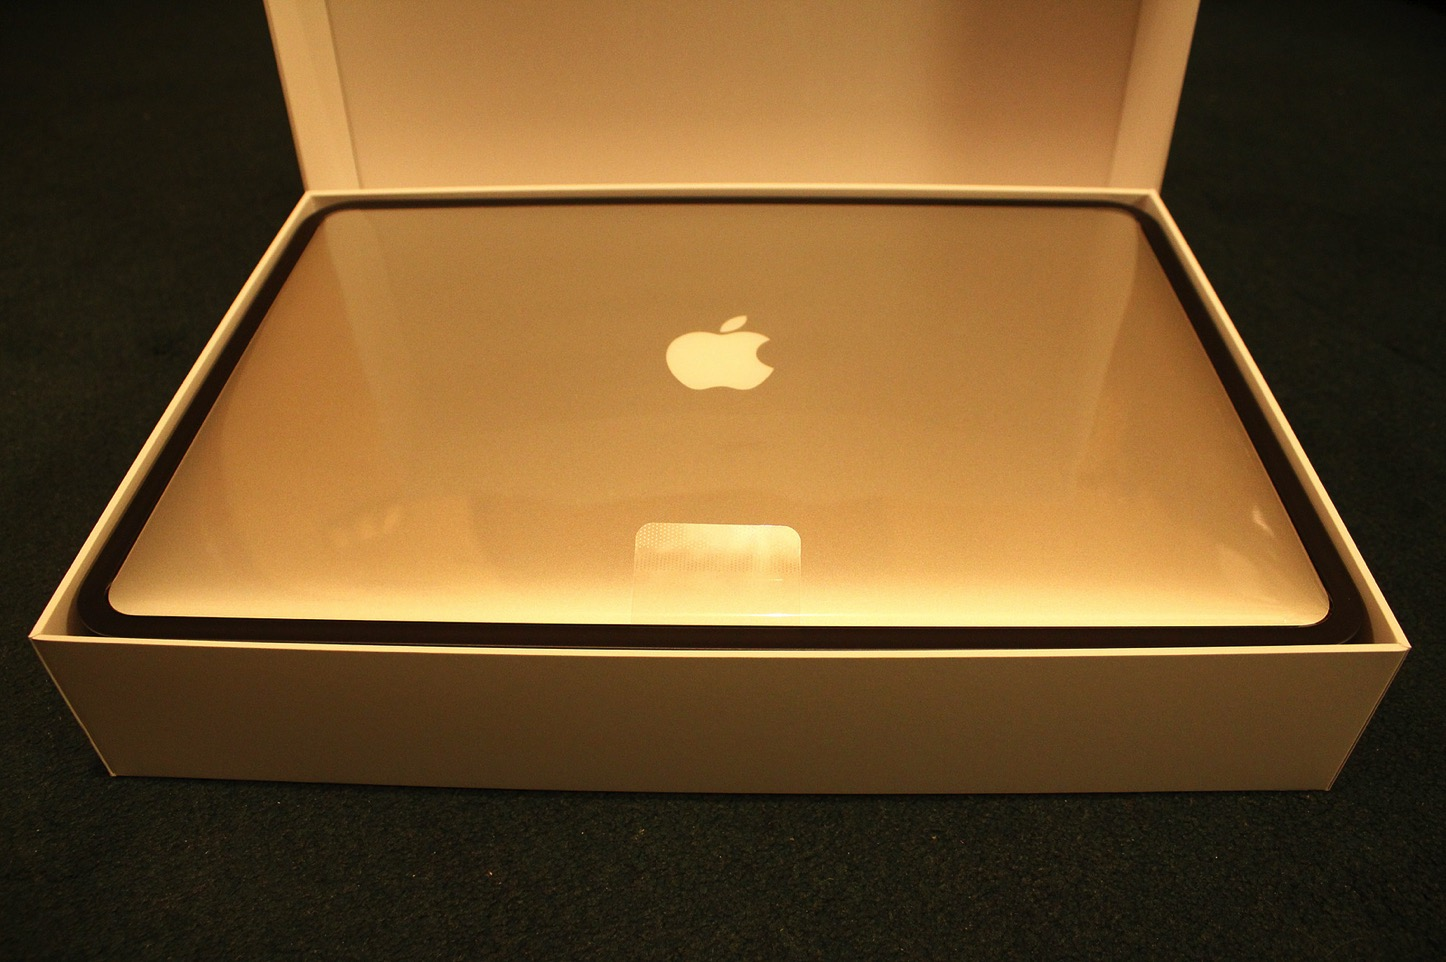 MacBook-Unboxing.jpg